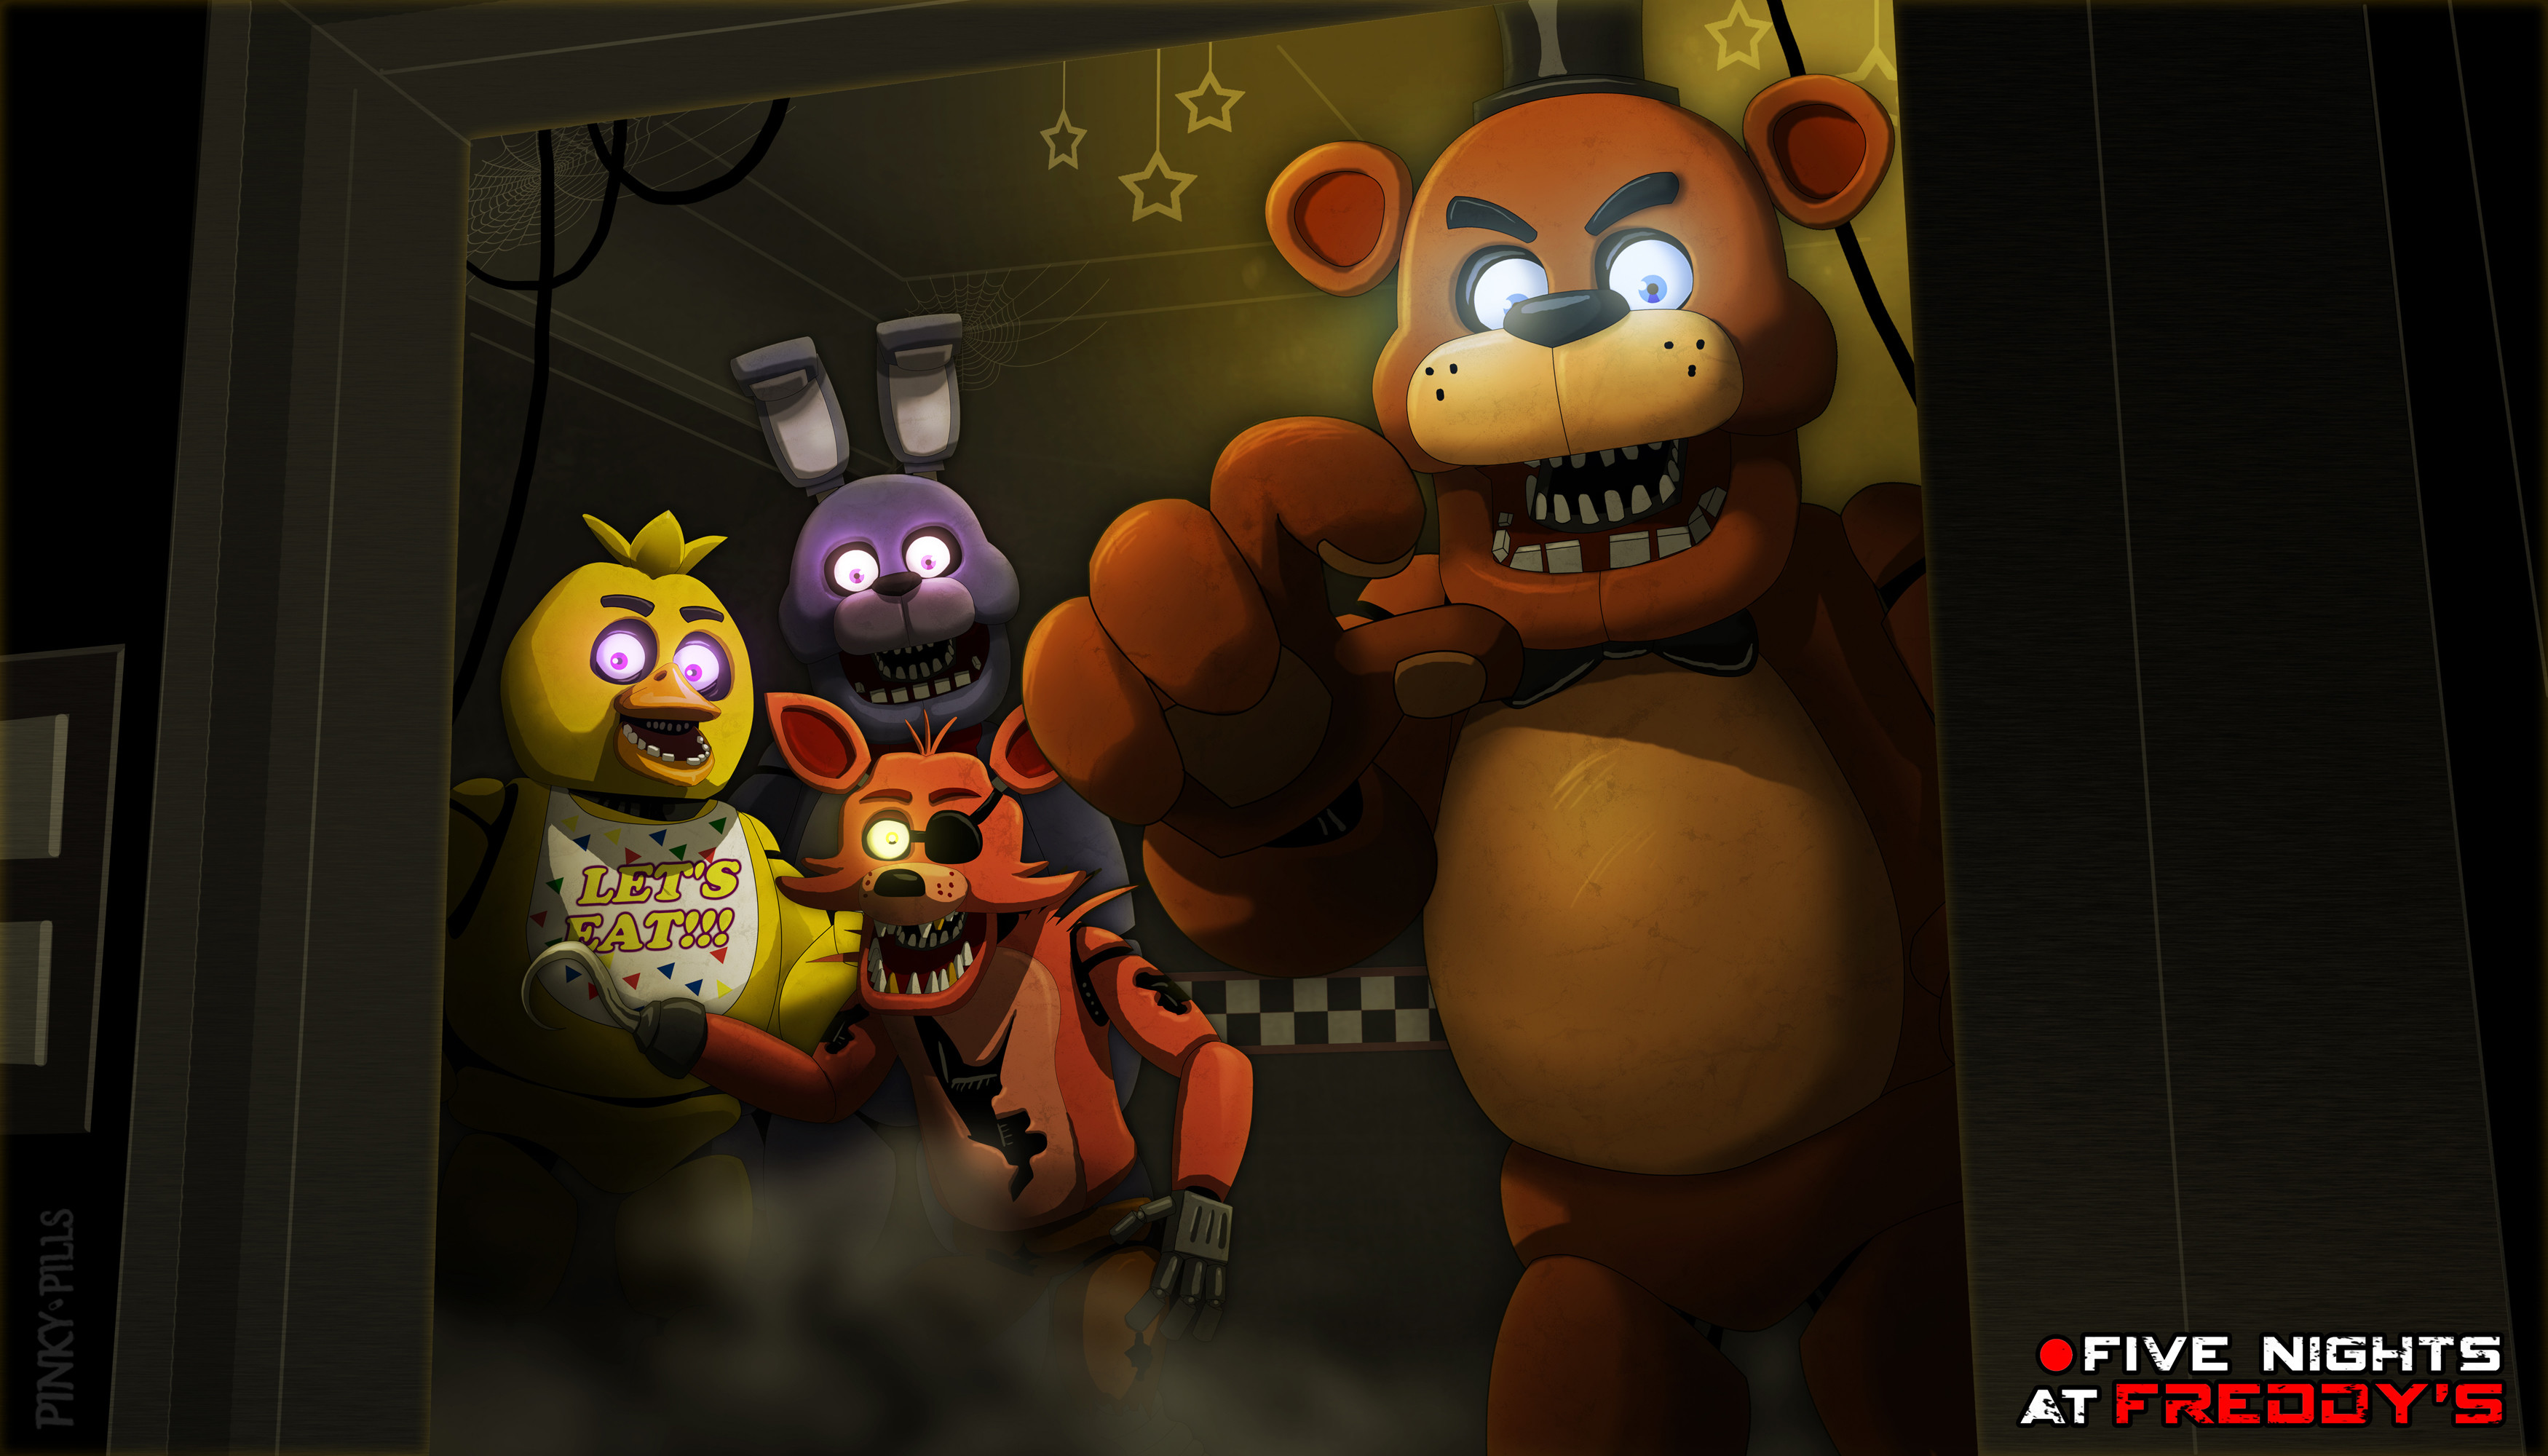 Res: 3500x2000, FNaF1 Wallpaper by PinkyPills FNaF1 Wallpaper by PinkyPills